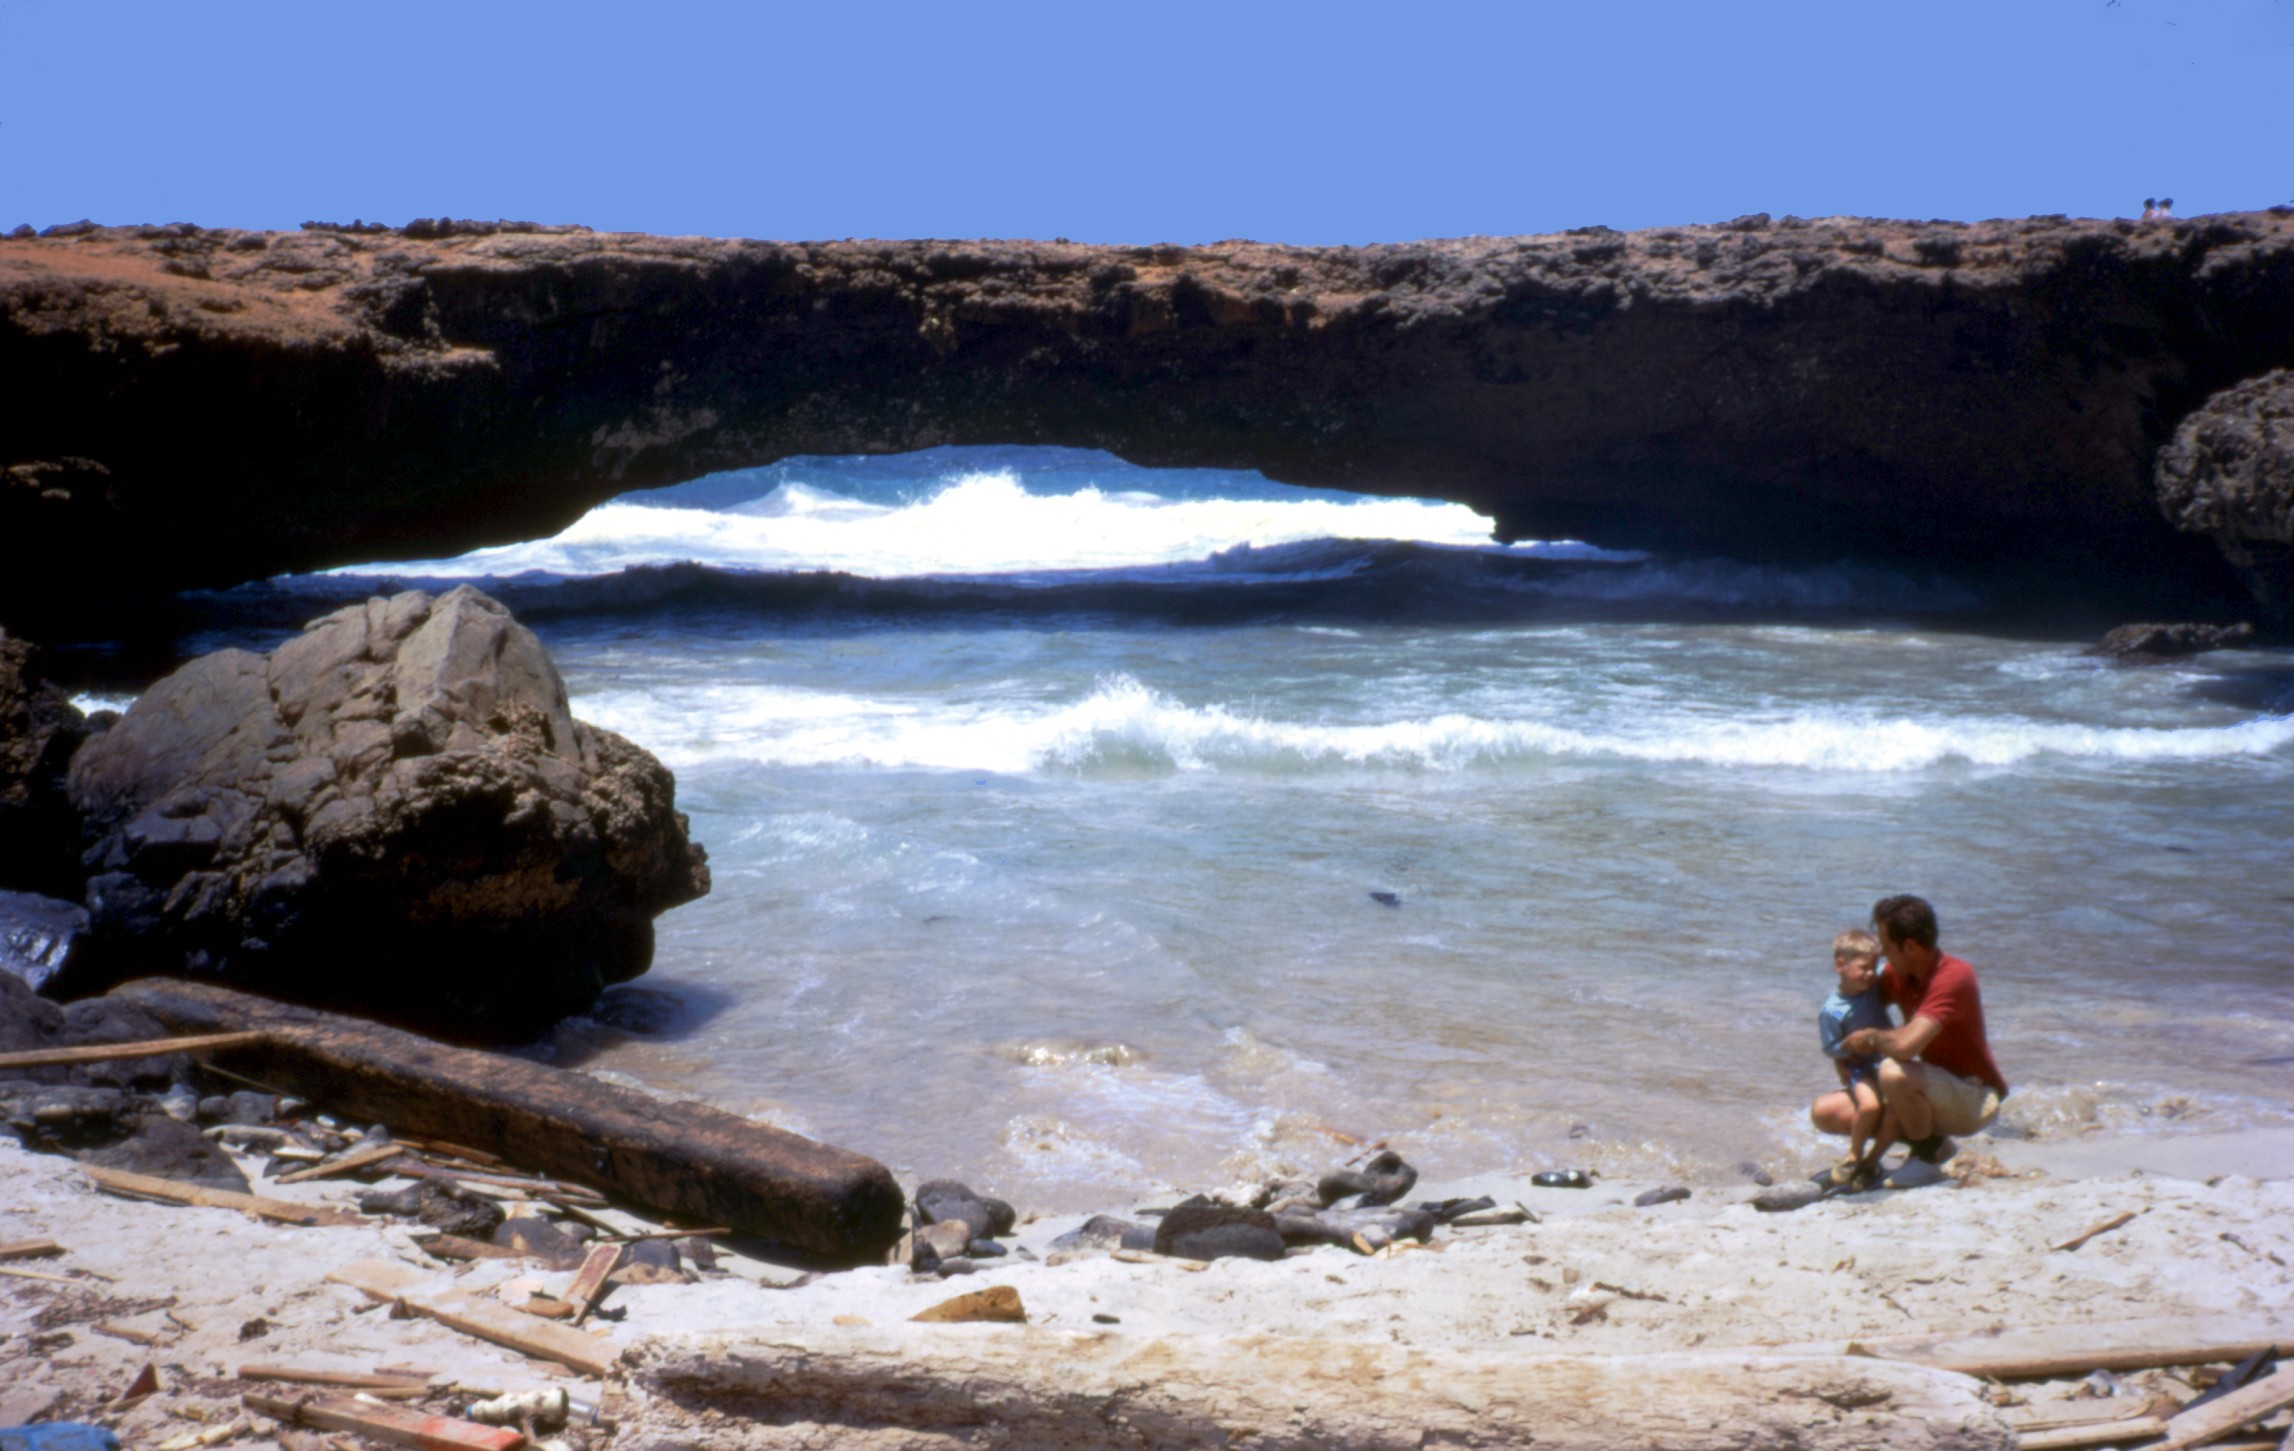 natural bridge dating Three majestic natural bridges invite you to ponder the power of water in a  landscape usually defined by its absence view them from an.